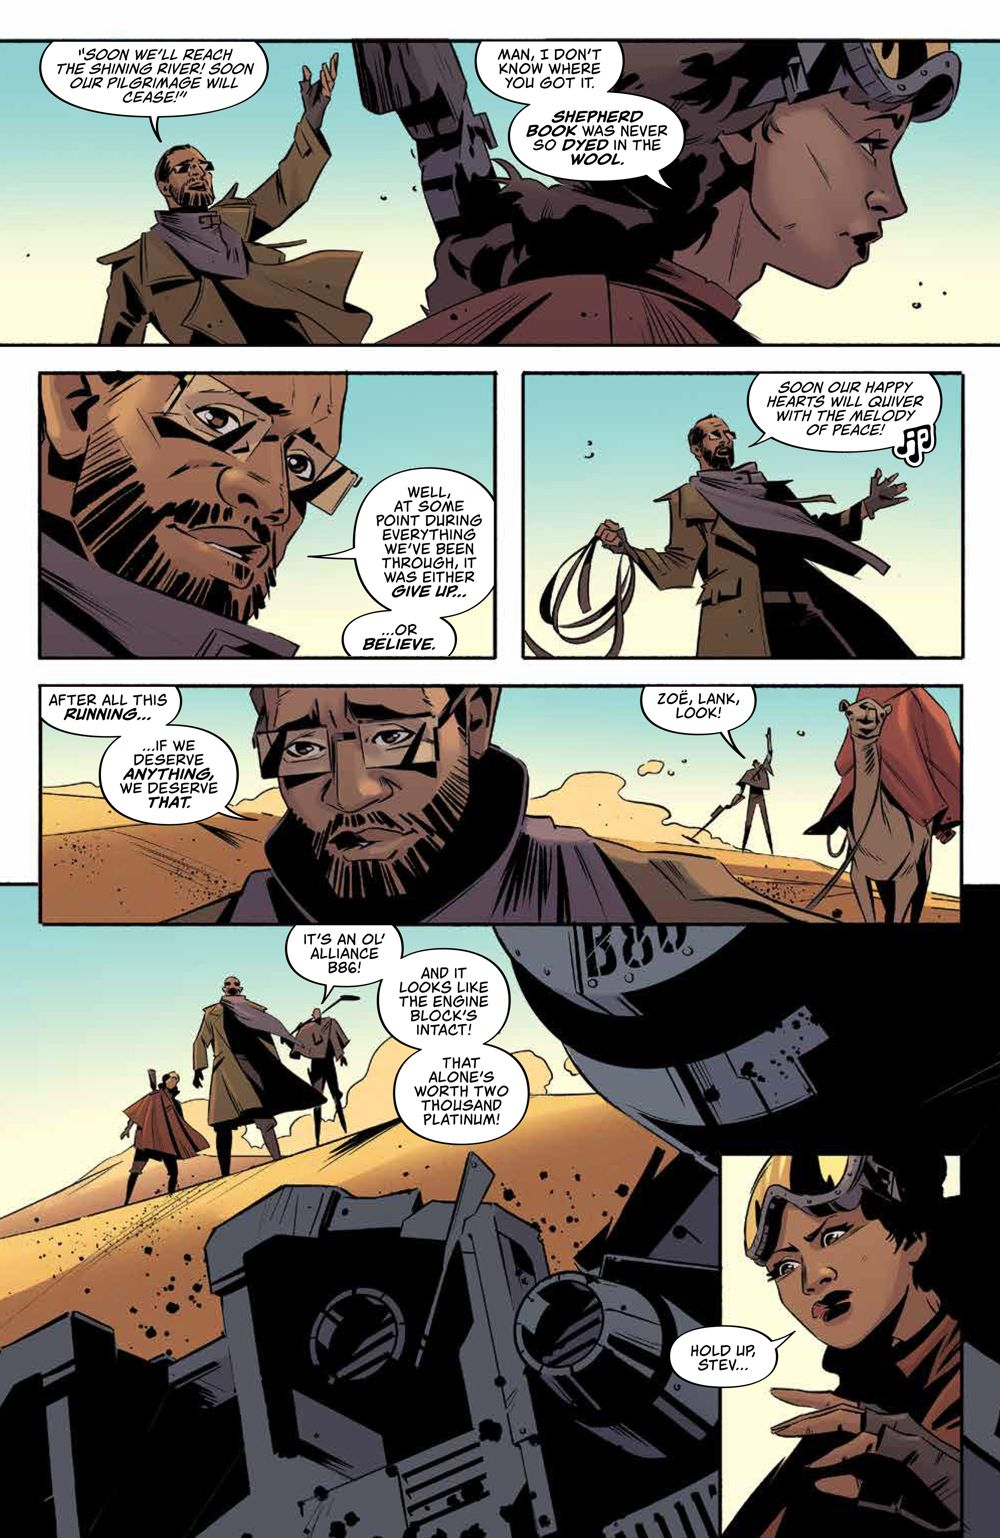 Firefly_025_PRESS_4 ComicList Previews: FIREFLY #25